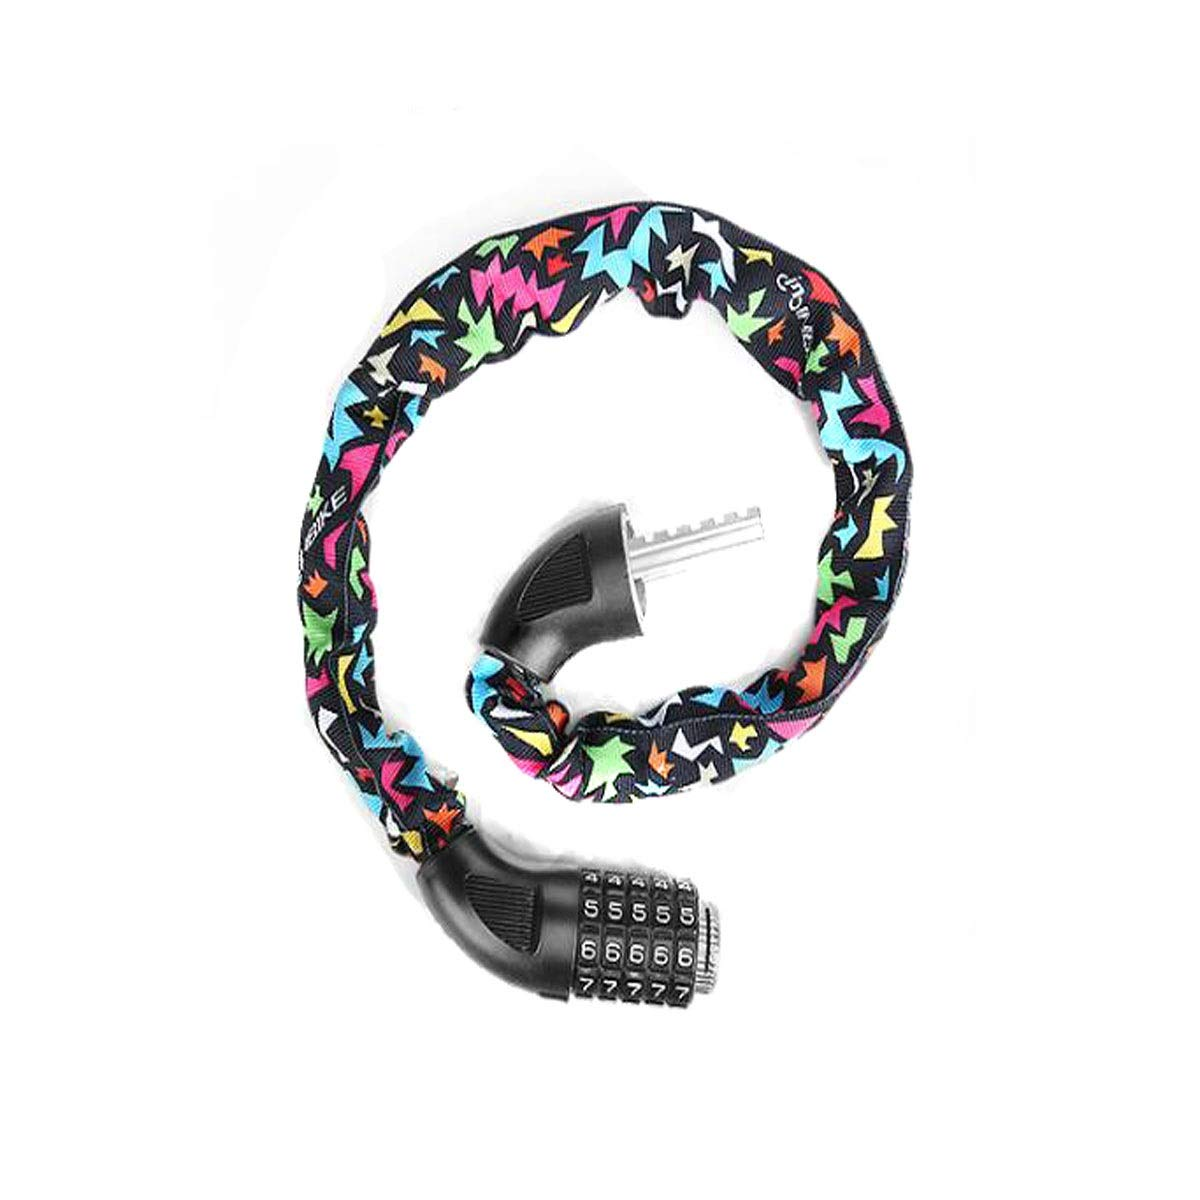 8haowenju Bicycle Chain Lock, Bicycle Safety Lock with 5-Digit Combination Lightweight Bicycle Lock, Size: 72 Inches (Length) 0.5 Inches (Diameter), Color: Multi-Colored